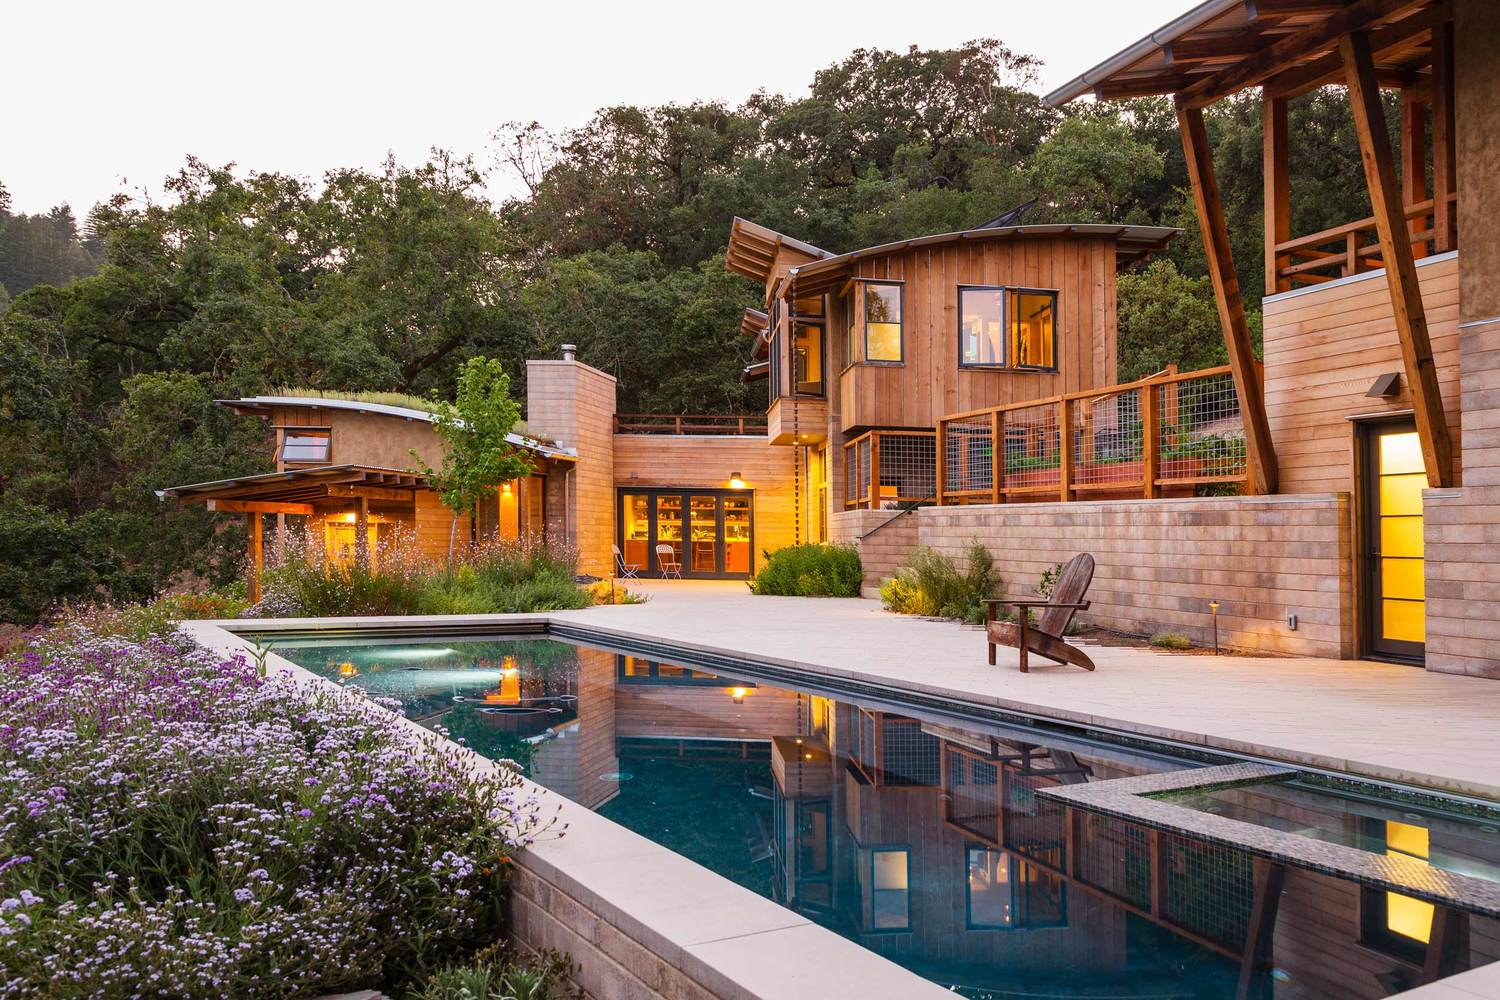 sonoma residence by arkin tilt using sweetwater watershed block